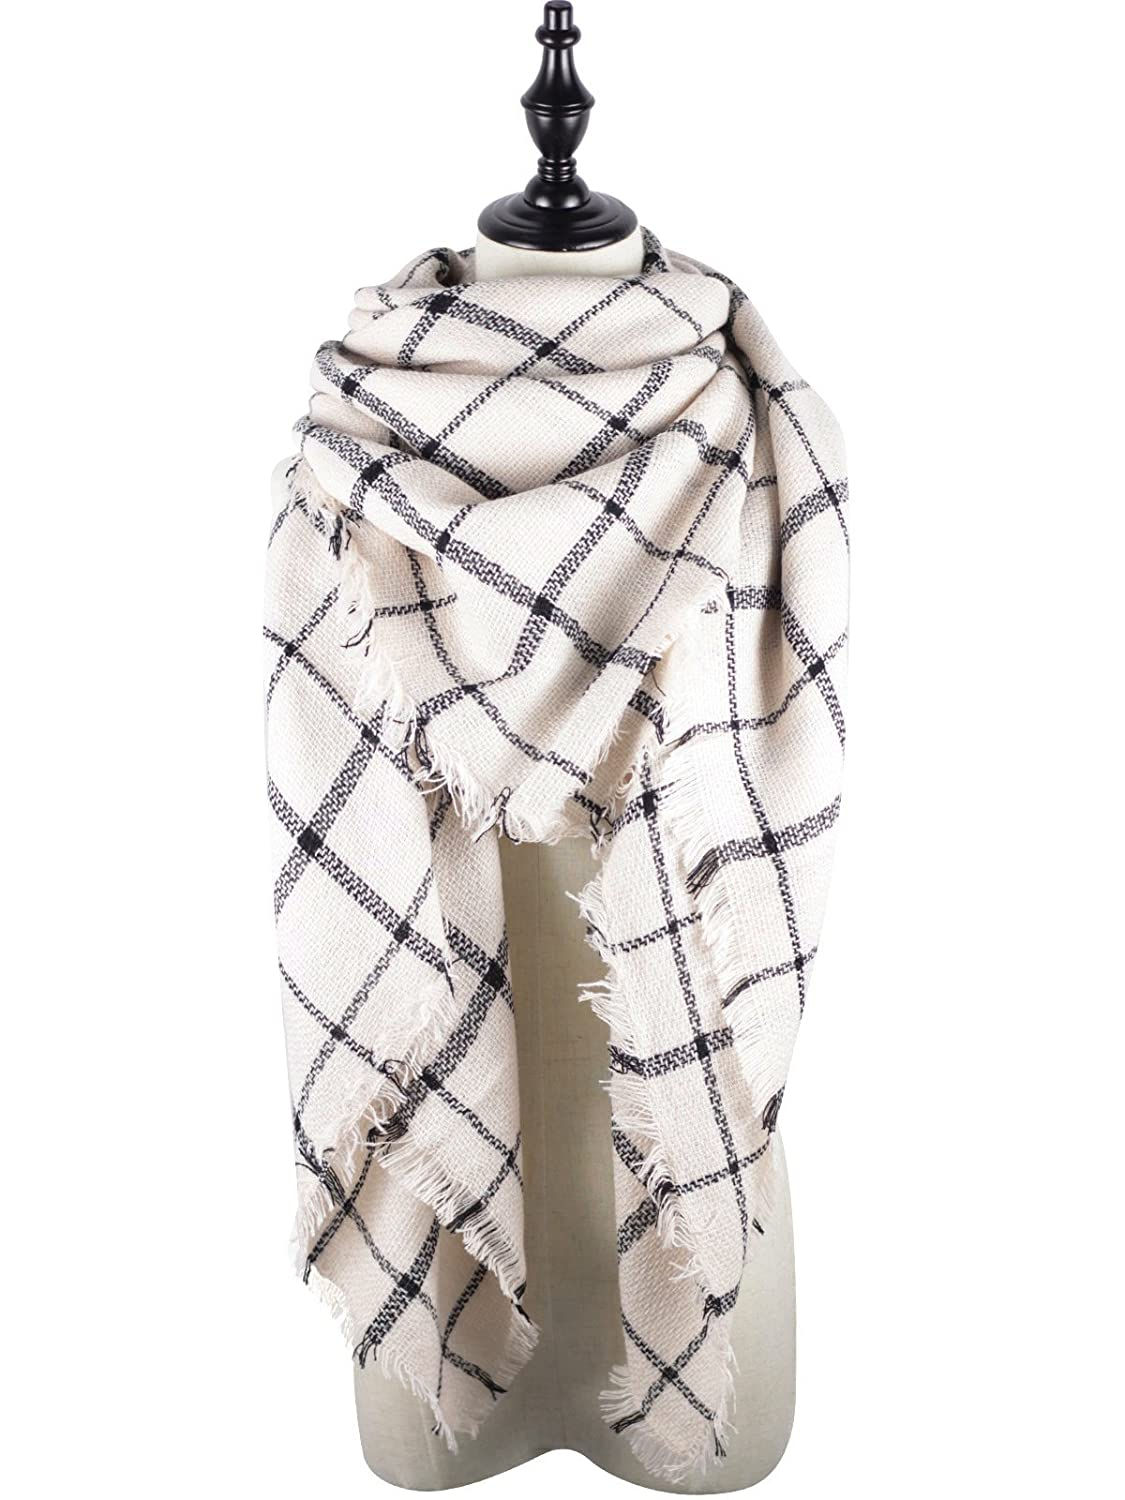 ece869e2b2f Zando Women's Scarves Fall Fashion Scarfs Soft Plaid Blanket Scarf ...